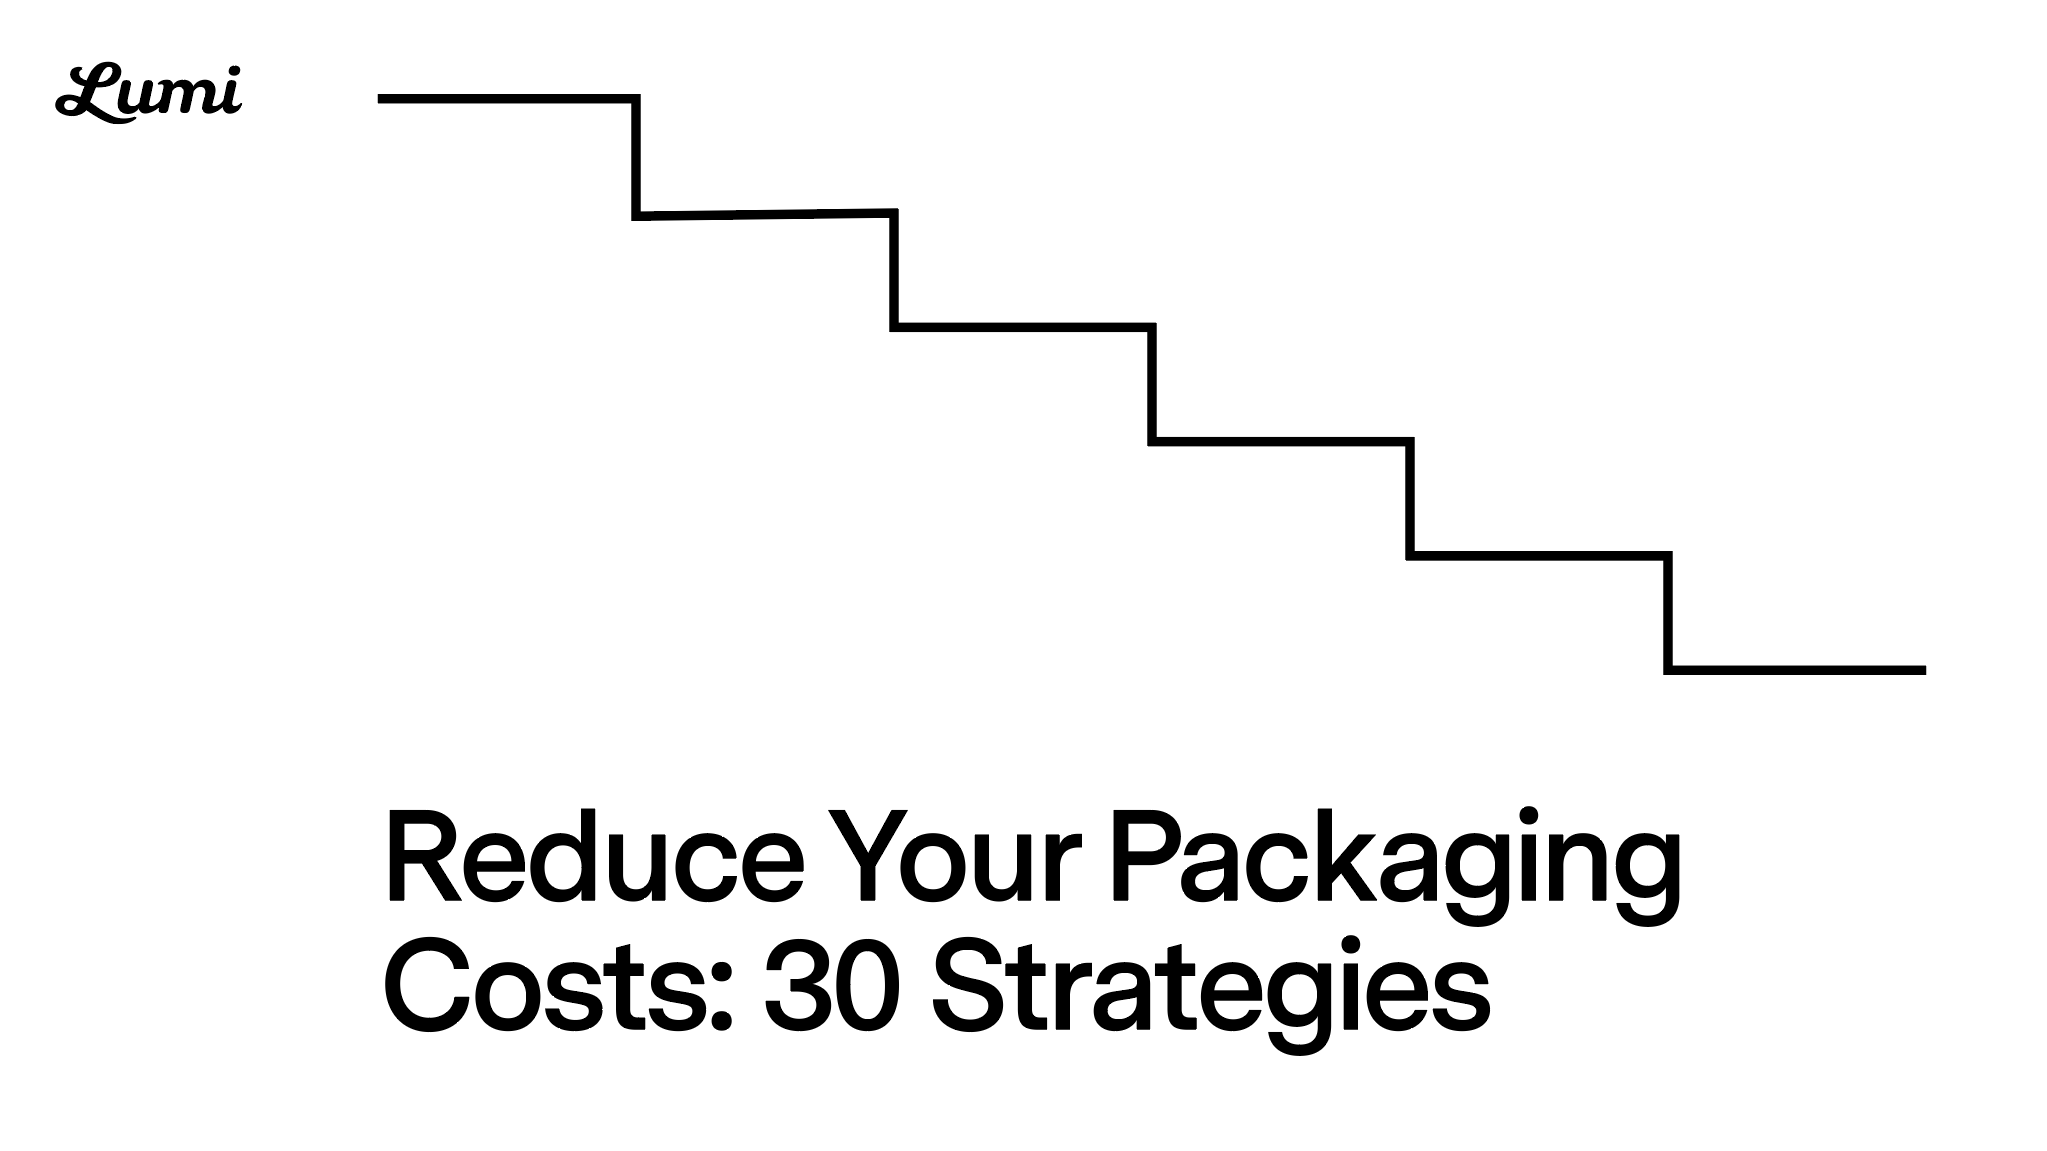 Thumb1 lumi reduce packaging costs guide 1